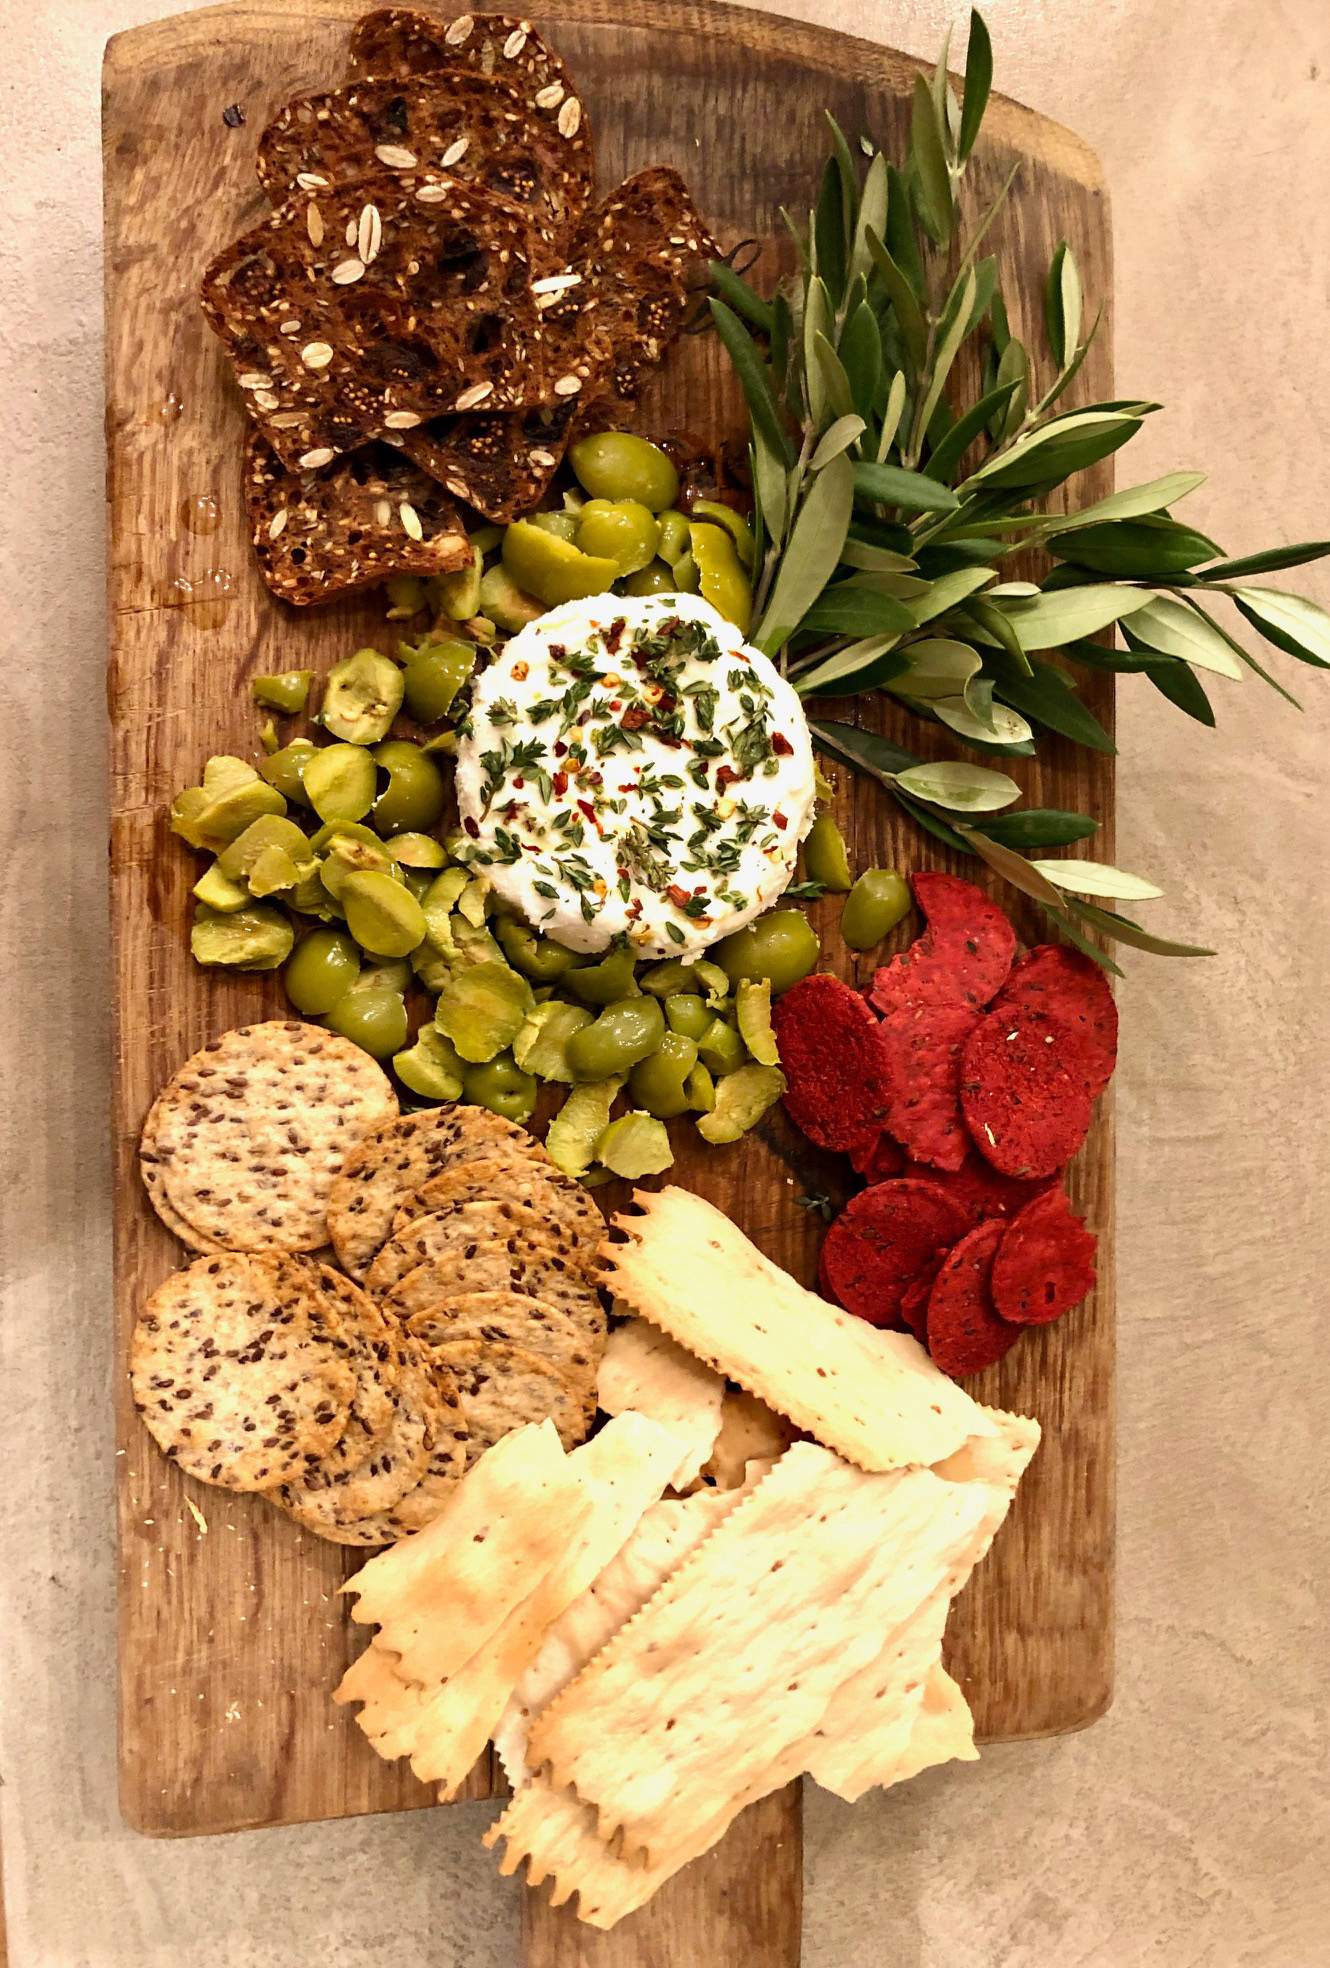 goat cheese and castroveltano olives